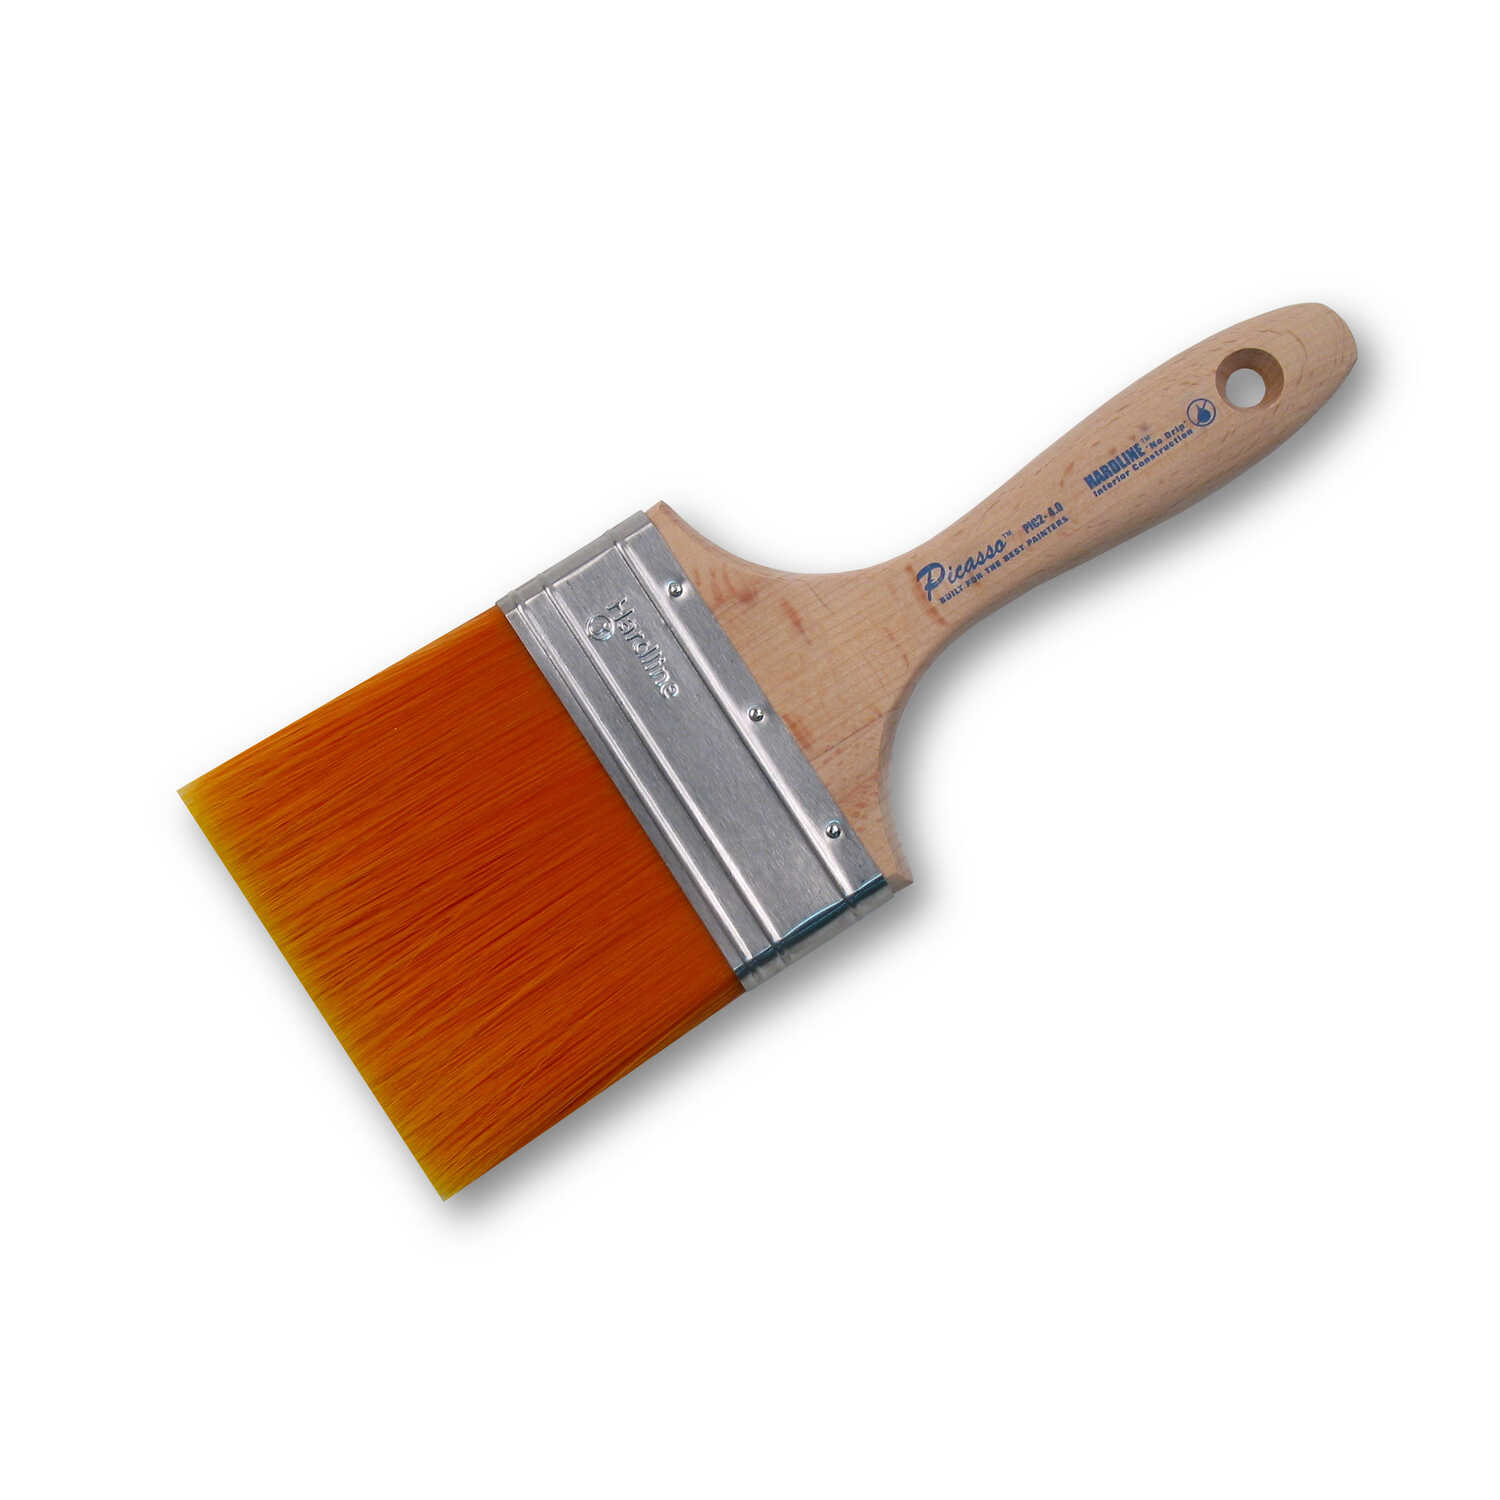 Proform  Picasso  4 in. W Straight  PBT  Soft  Paint Brush